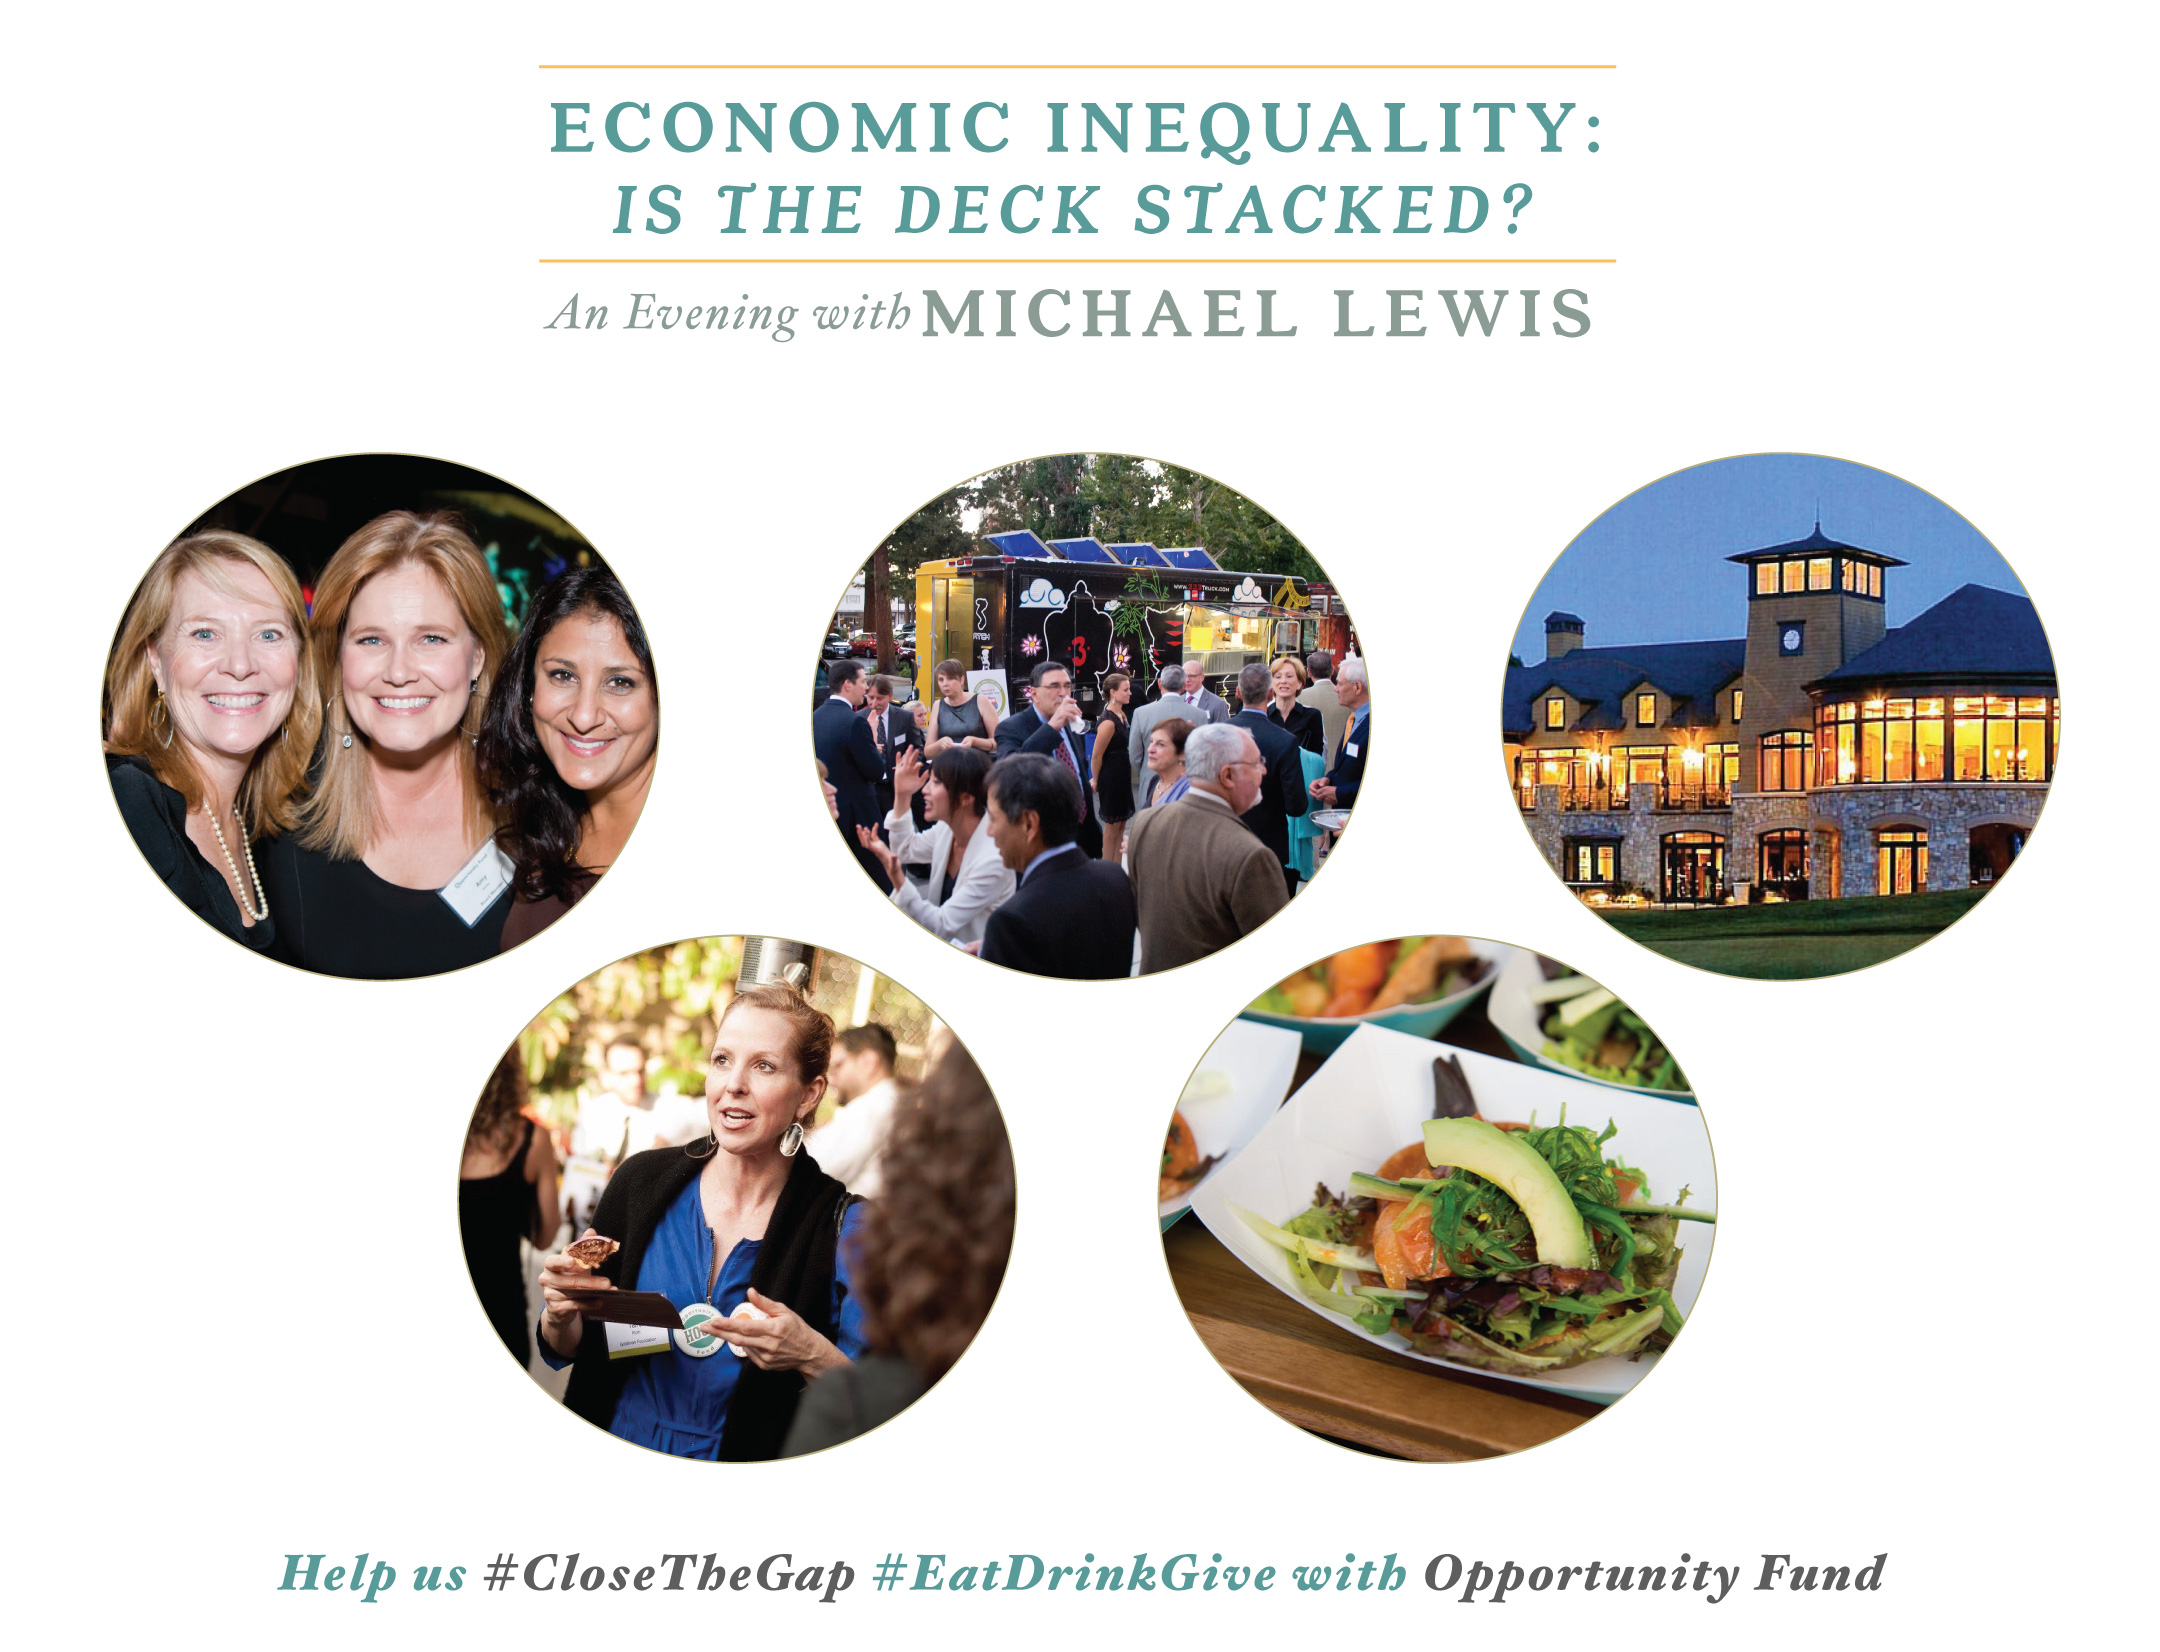 An Evening with Michael Lewis benefiting Opportunity Fund